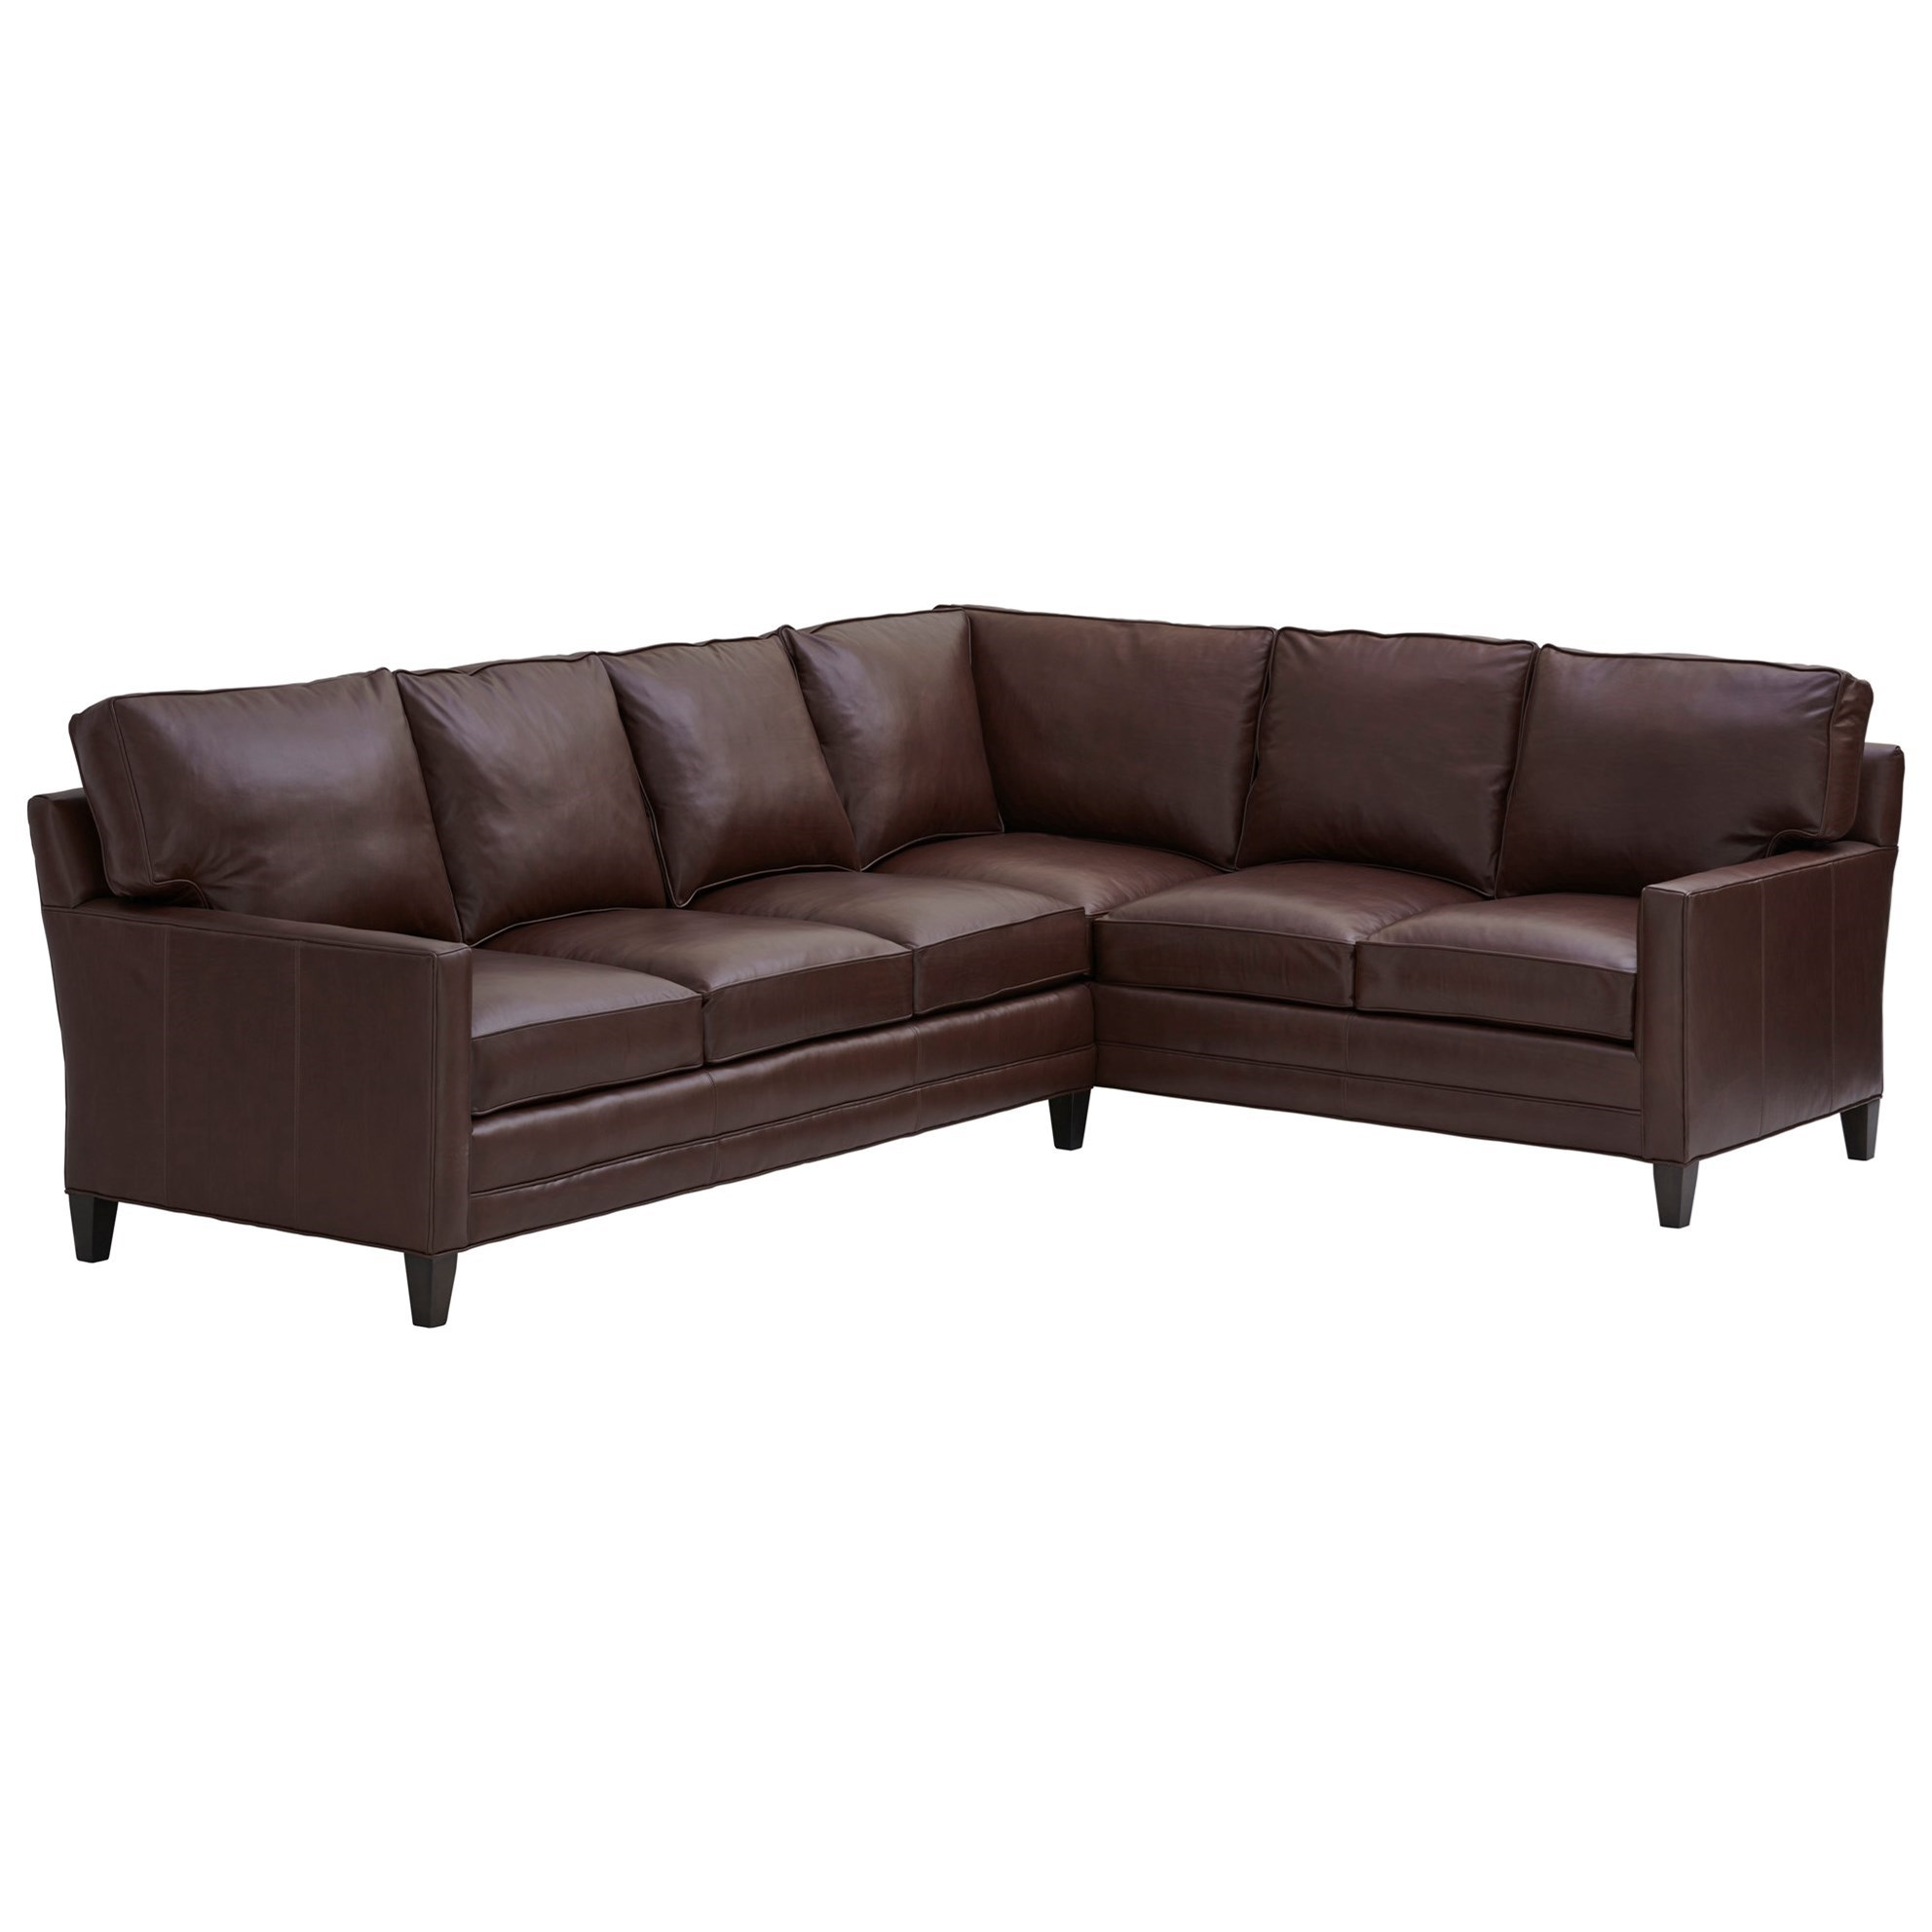 Couture Leather Brayden Customizable 5-Seat Sectional Sofa by Lexington at Baer's Furniture